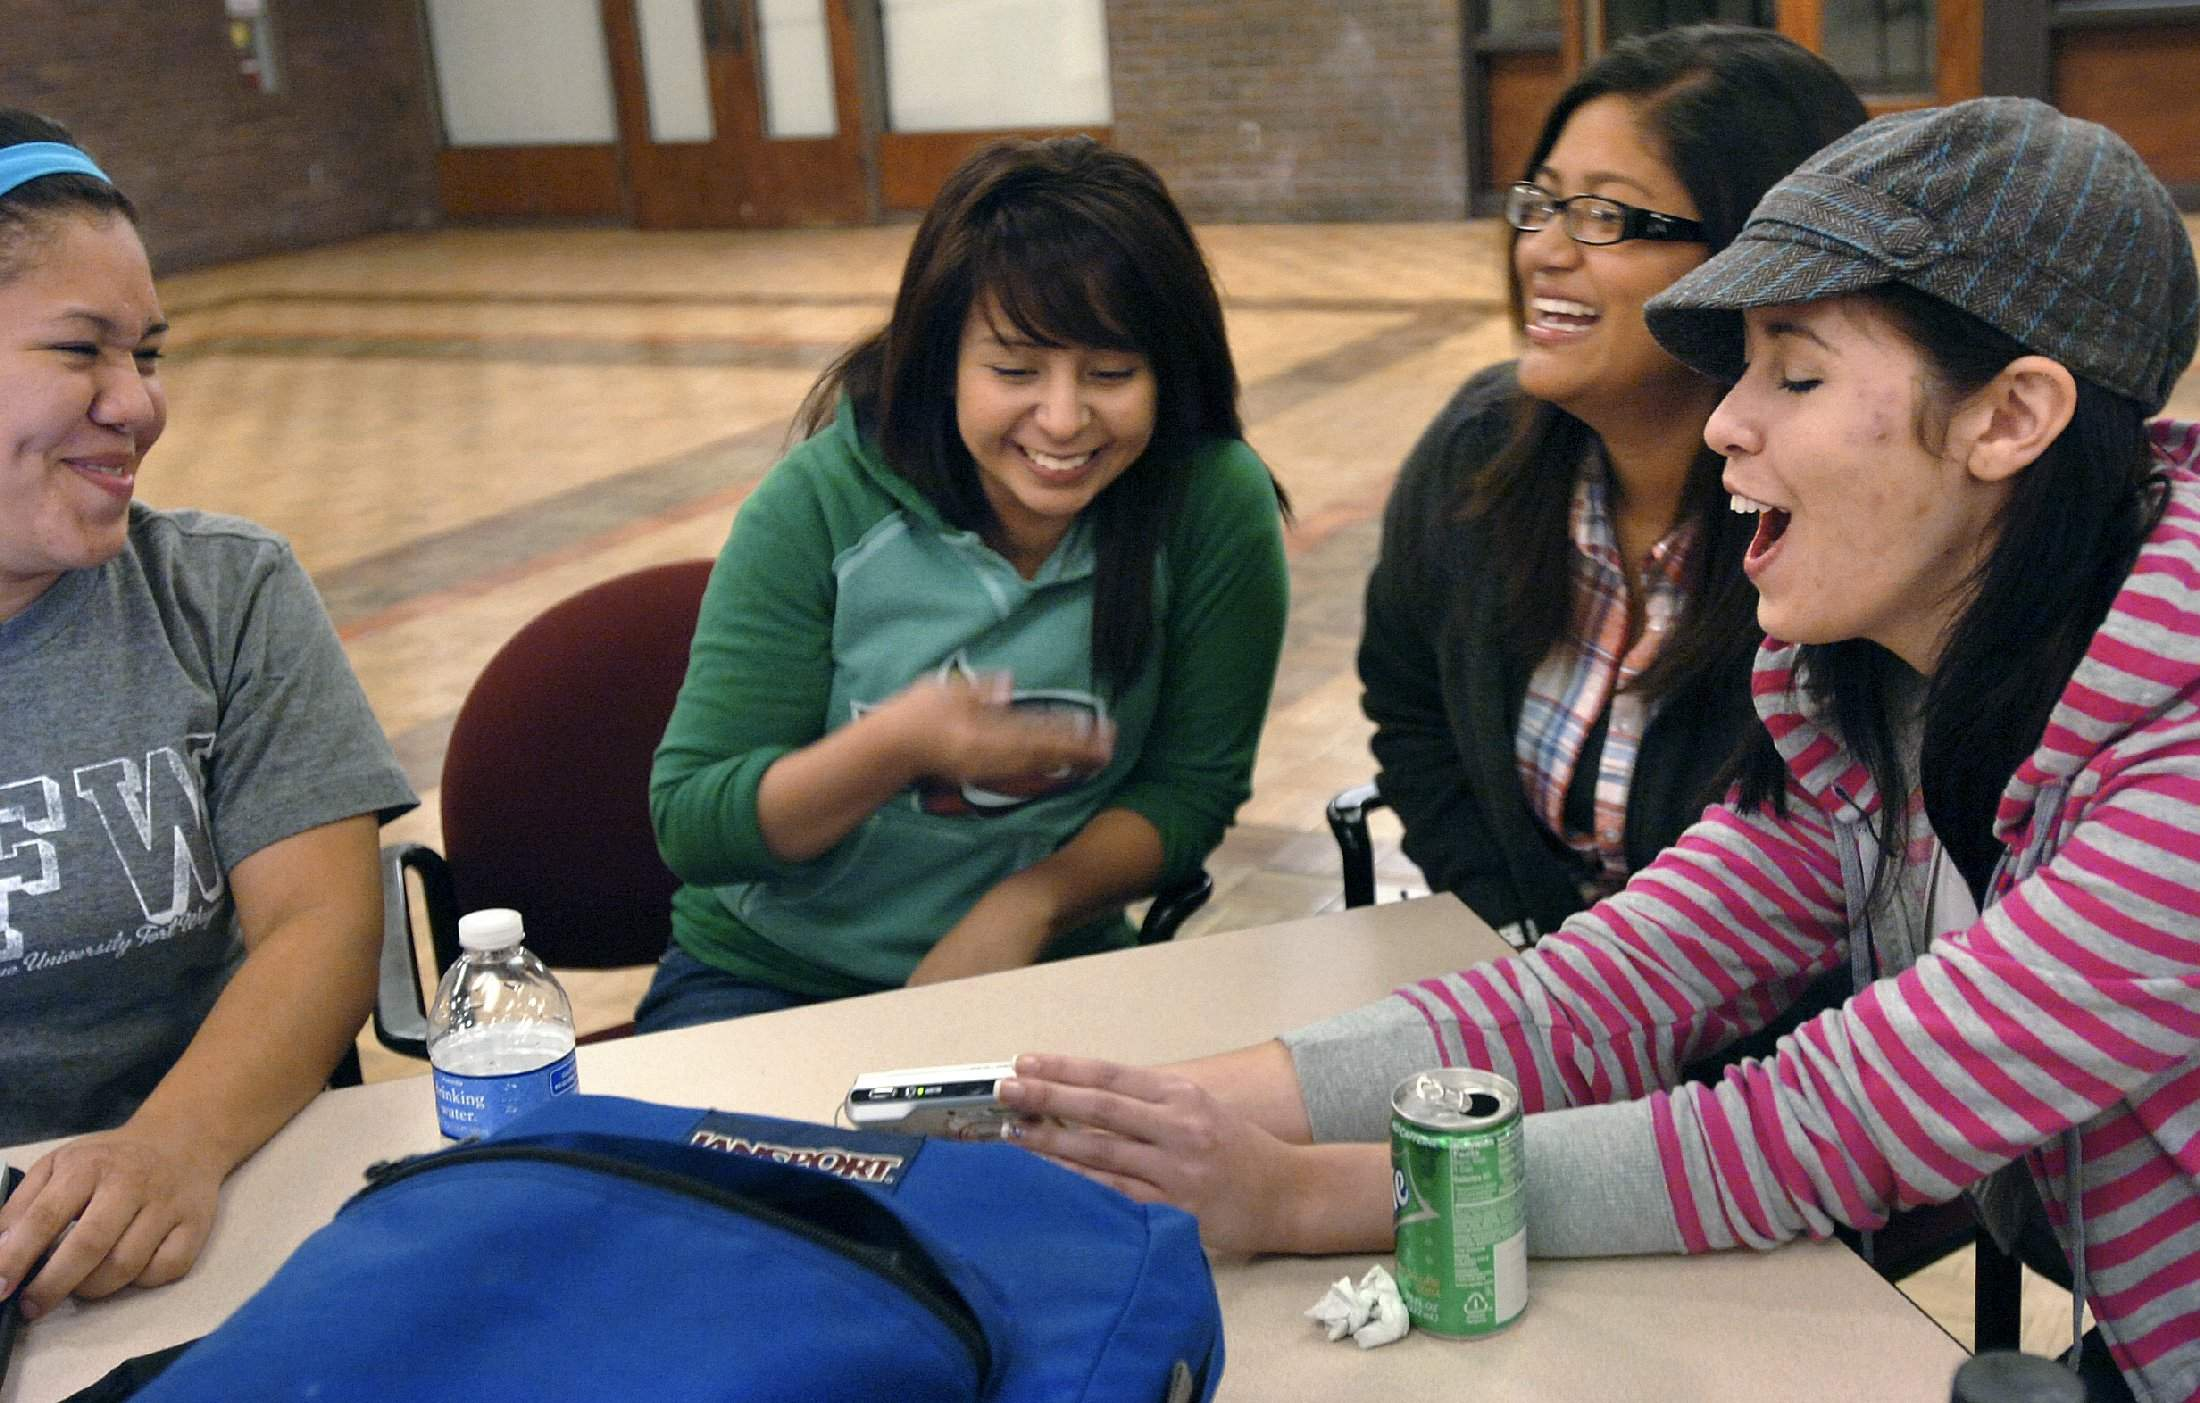 FWCS affirms safe setting for immigrants Schools The Journal 2200x1403